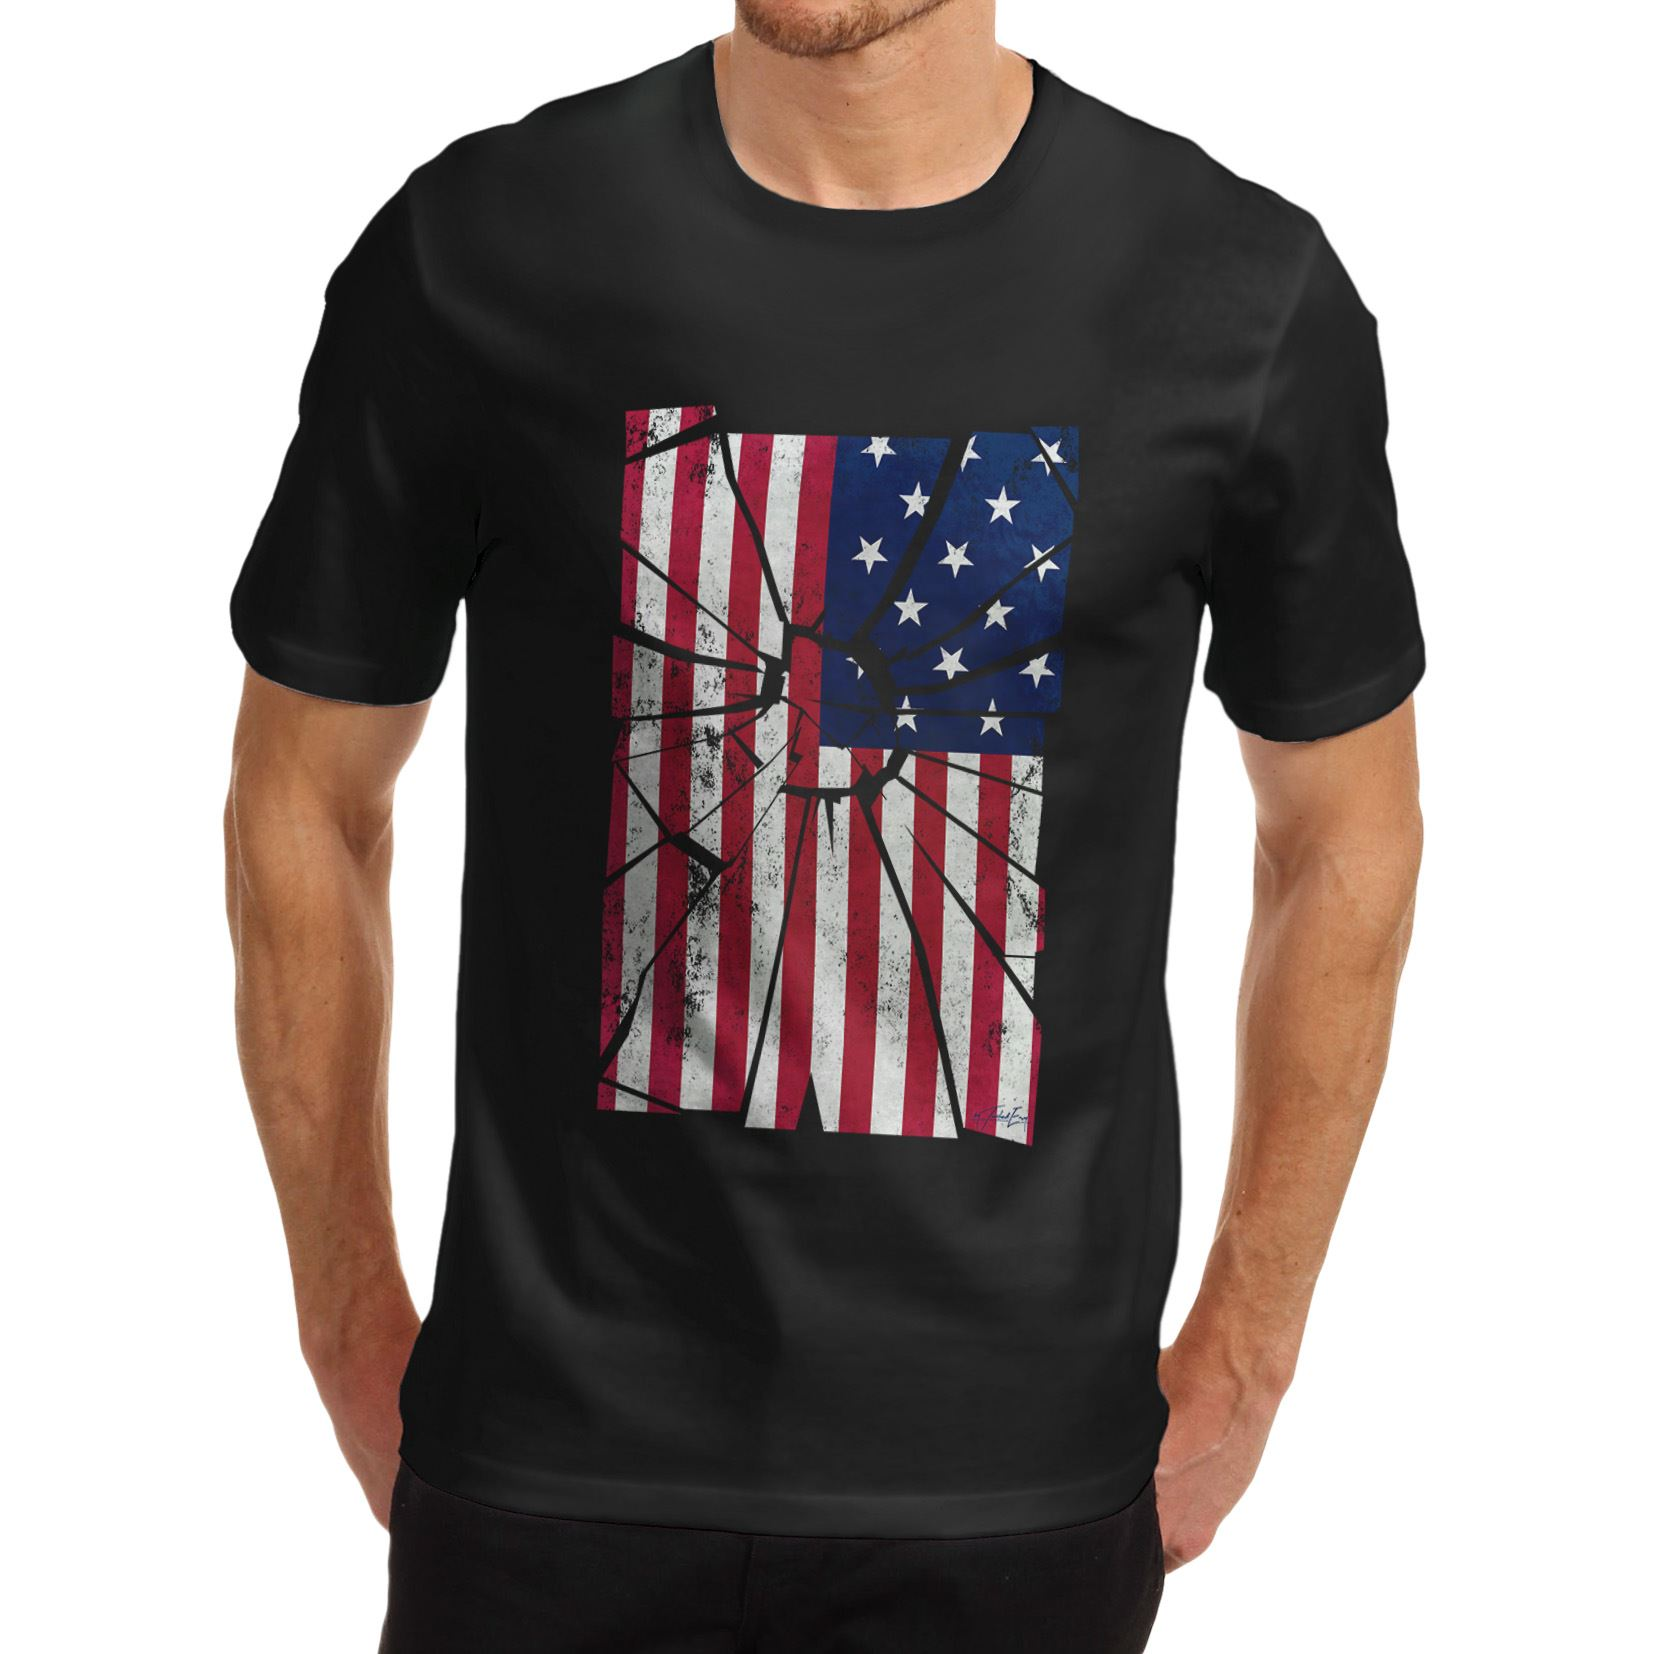 Design your own t shirt made in usa - Round Neck Teenage Pop Top Tee Men Shattered Distressed Stars And Stripes Distort Usa Flag T